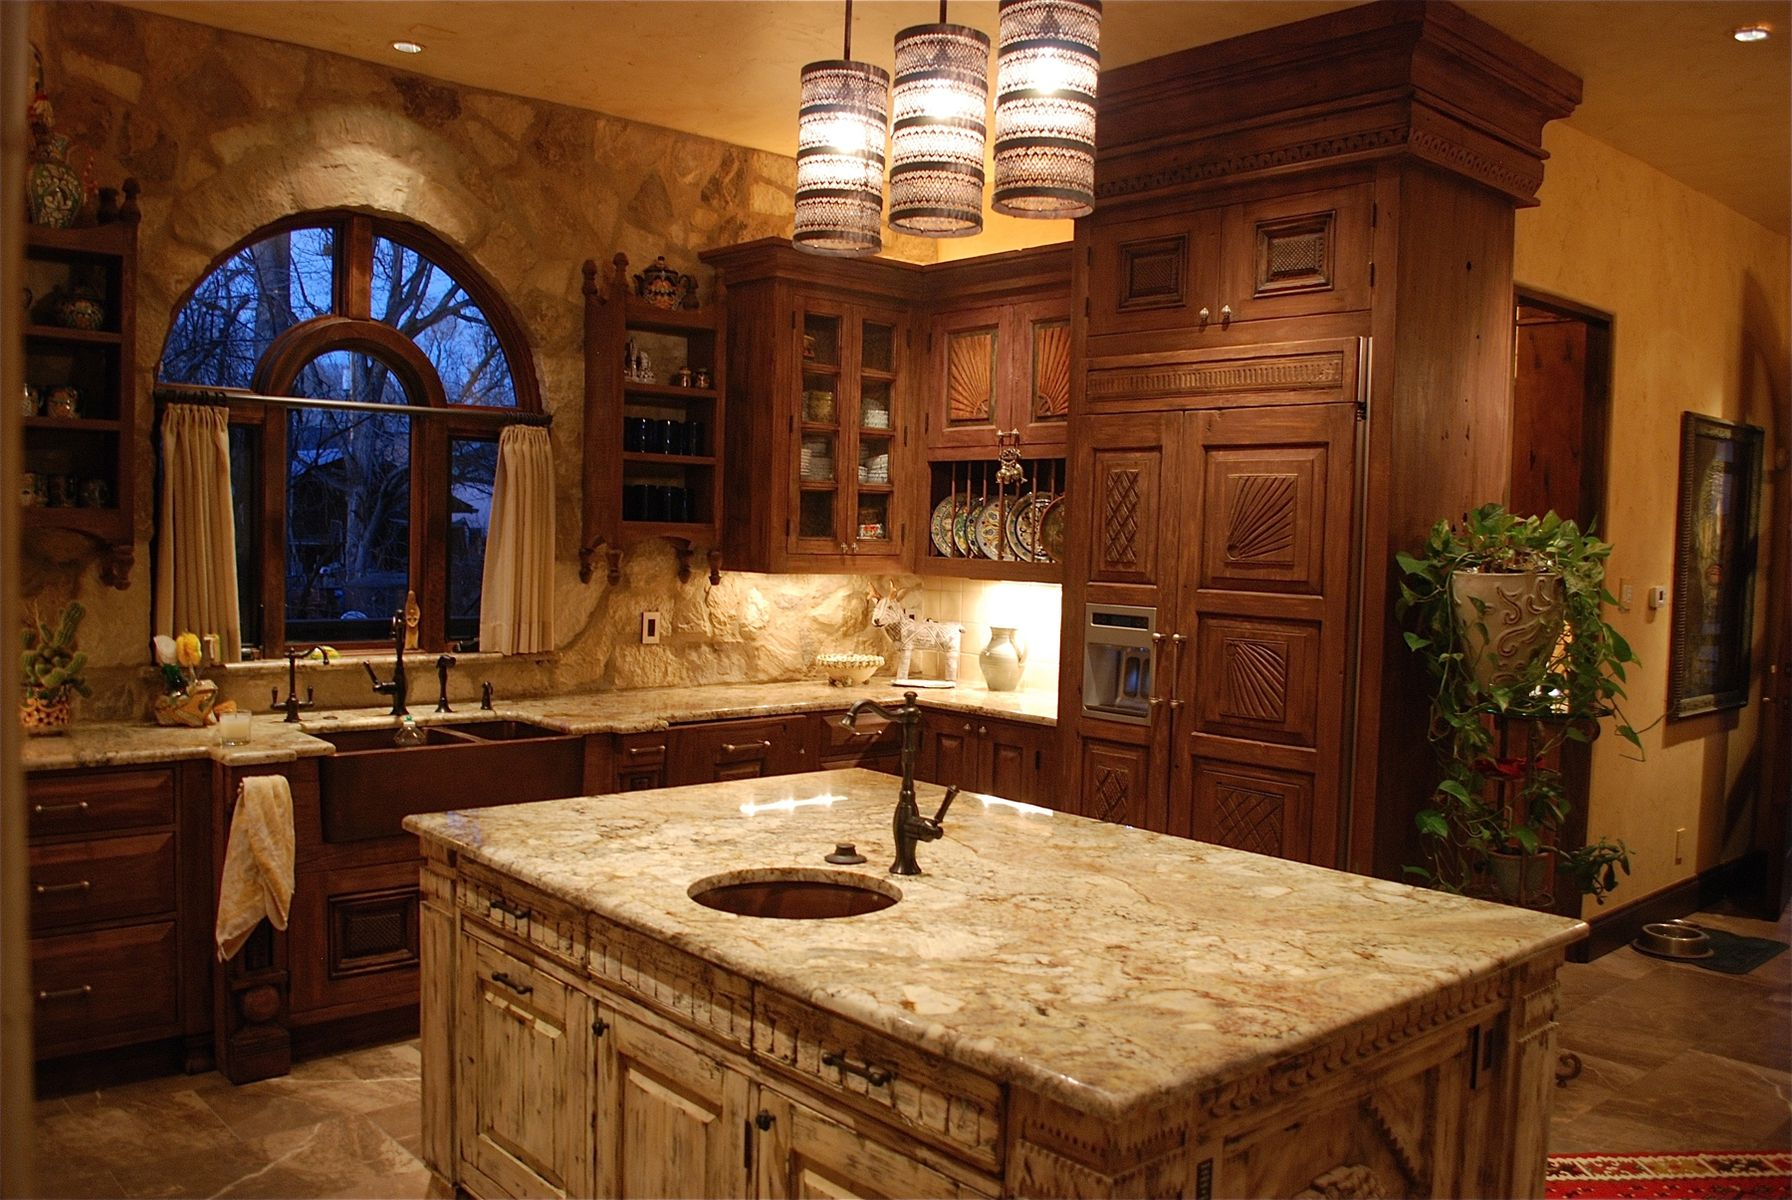 Hand made custom painted kitchen cabinets by tilde design for Are painted kitchen cabinets in style